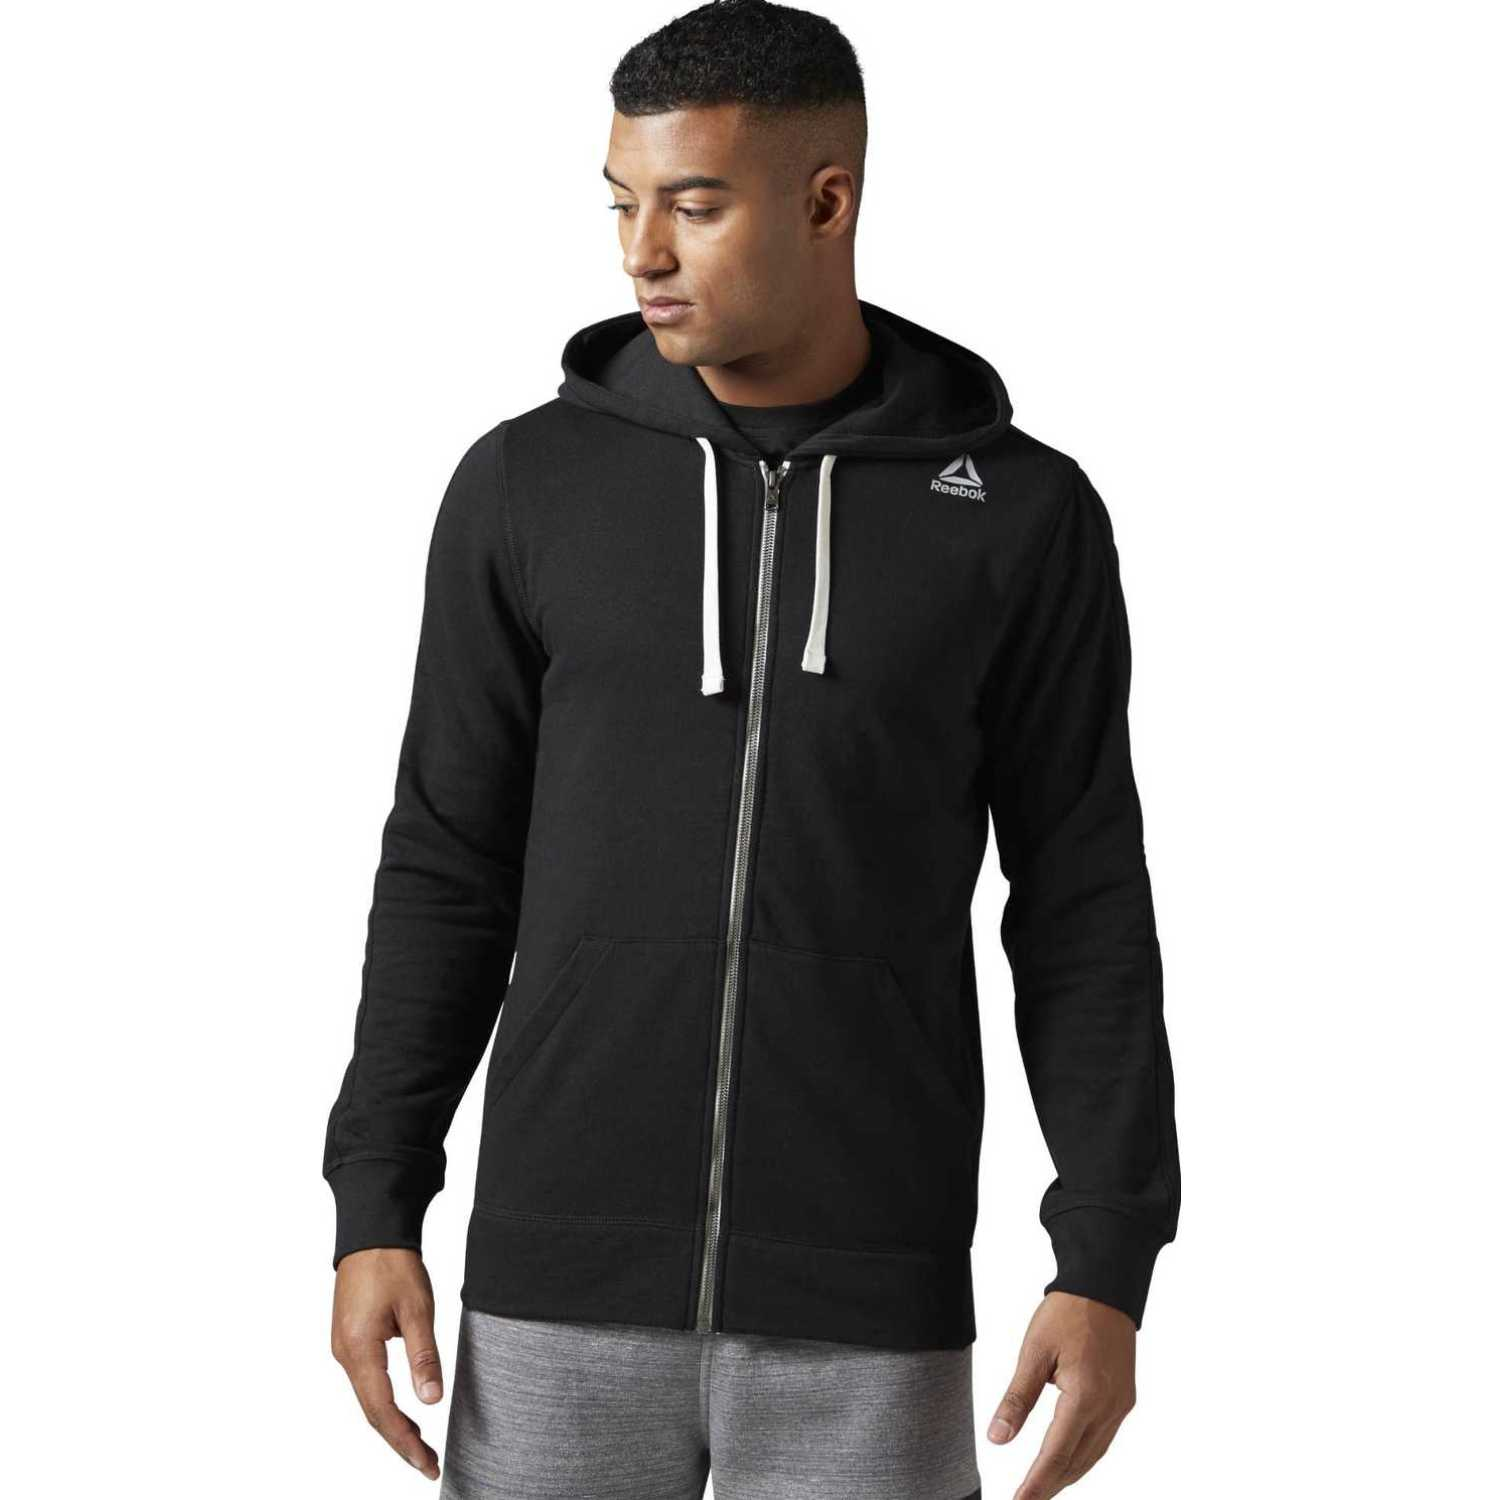 Reebok te ft fz hoodie Negro Hoodies y Sweaters Fashion